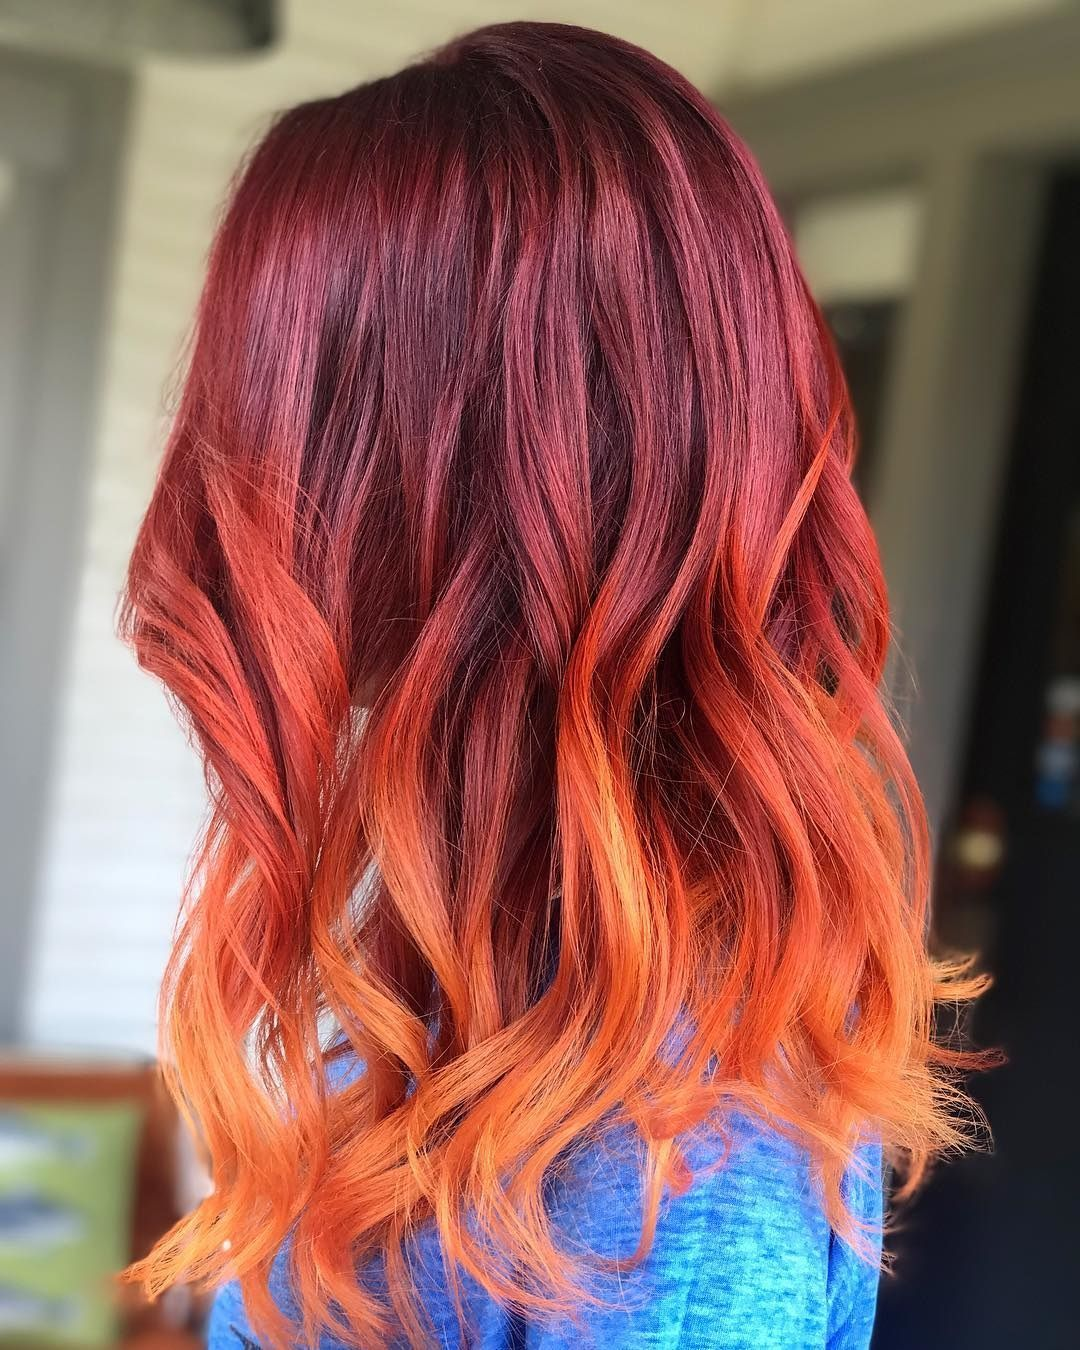 Hair Color Trends For 2021 Red Ombre Hairstyles Pretty Designs In 2020 Orange Ombre Hair Red Ombre Hair Hair Color Red Ombre